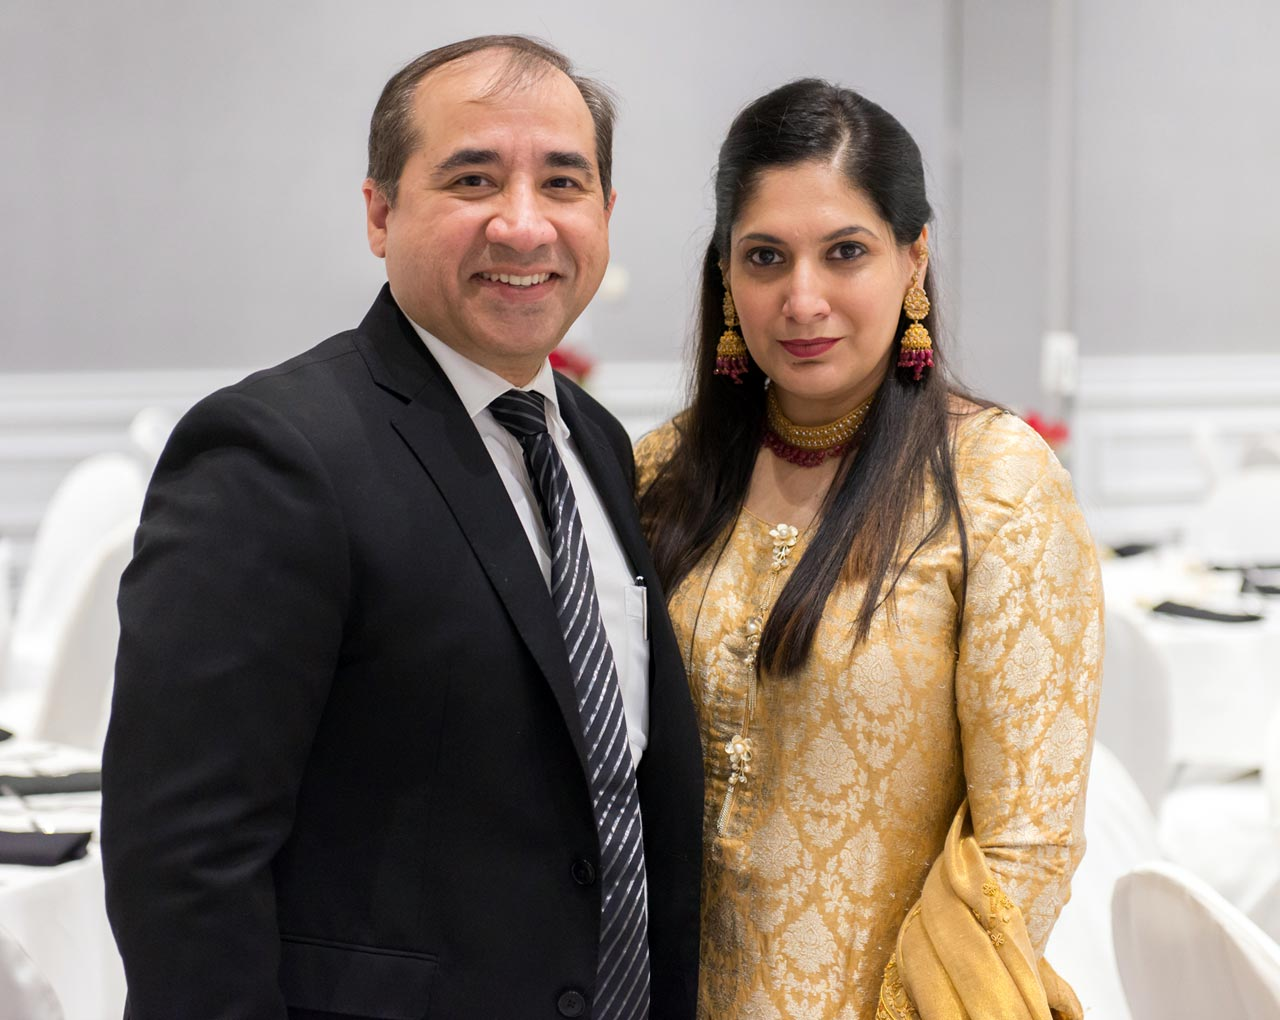 Shaikh Amin's son Zahid and his wife Tayyaba rejoicing the moment before the start of groom side reception in Portland, Oregon.